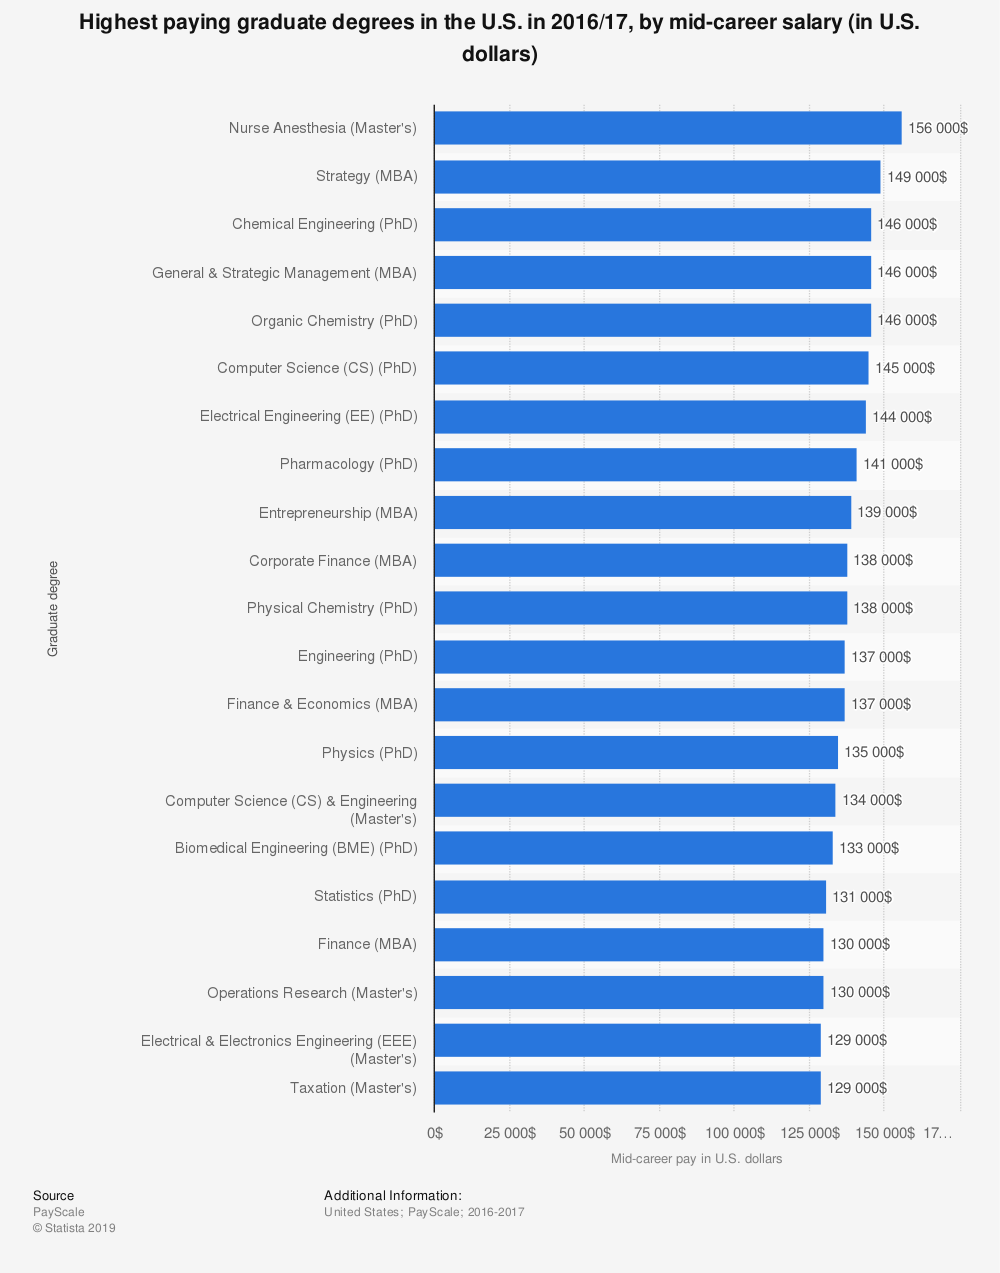 Statistic: Highest paying graduate degrees in the U.S. in 2016/17, by mid-career salary (in U.S. dollars) | Statista